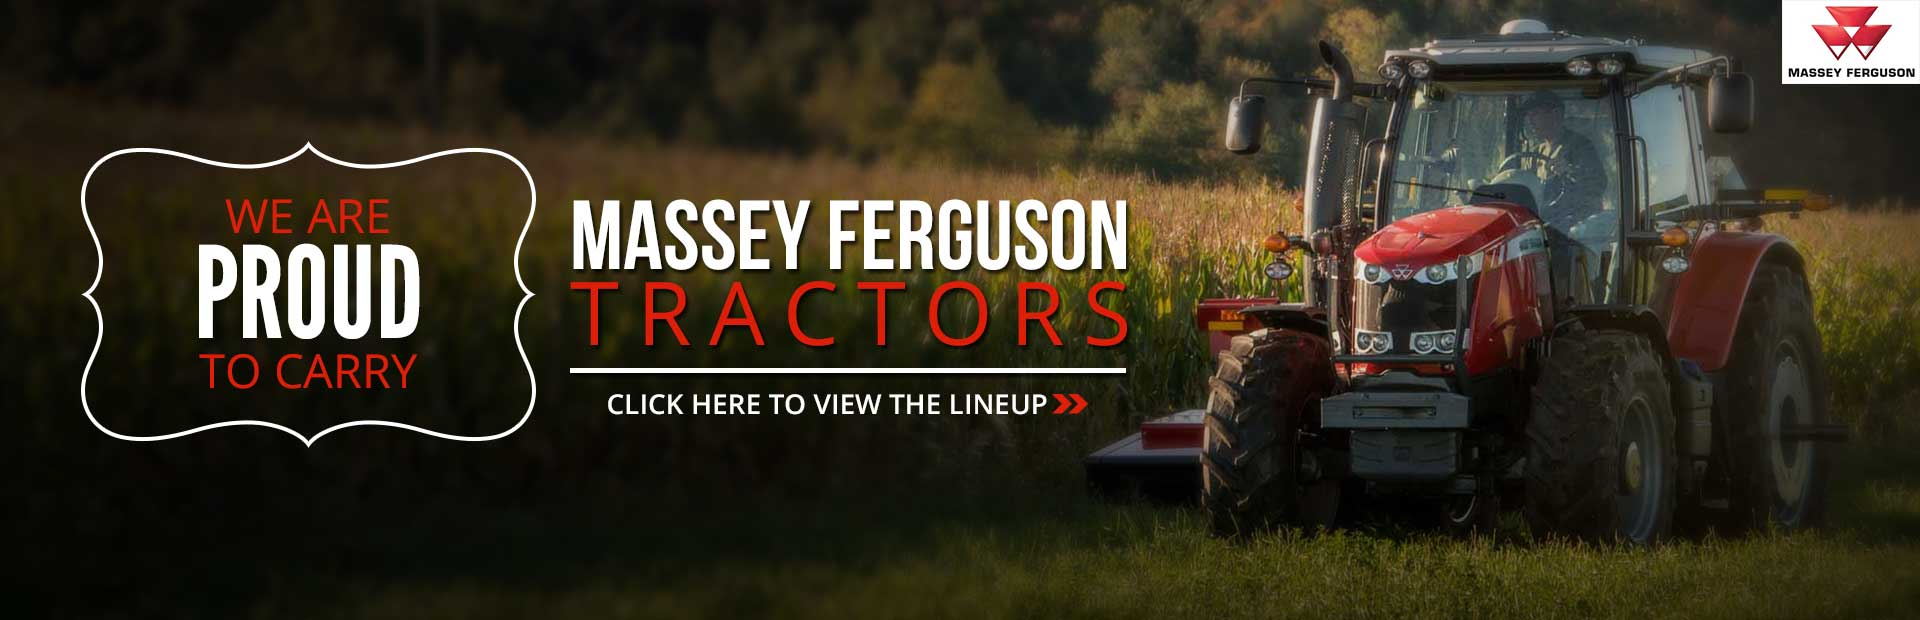 Southwestern Equipment Inc Rural Retreat Va 276 686 5531 Riding Mower Parts Diagram Also Ferris Zero Turn We Are Proud To Carry Massey Ferguson Tractors Click Here View The Lineup Simplicity Lawn Mowers